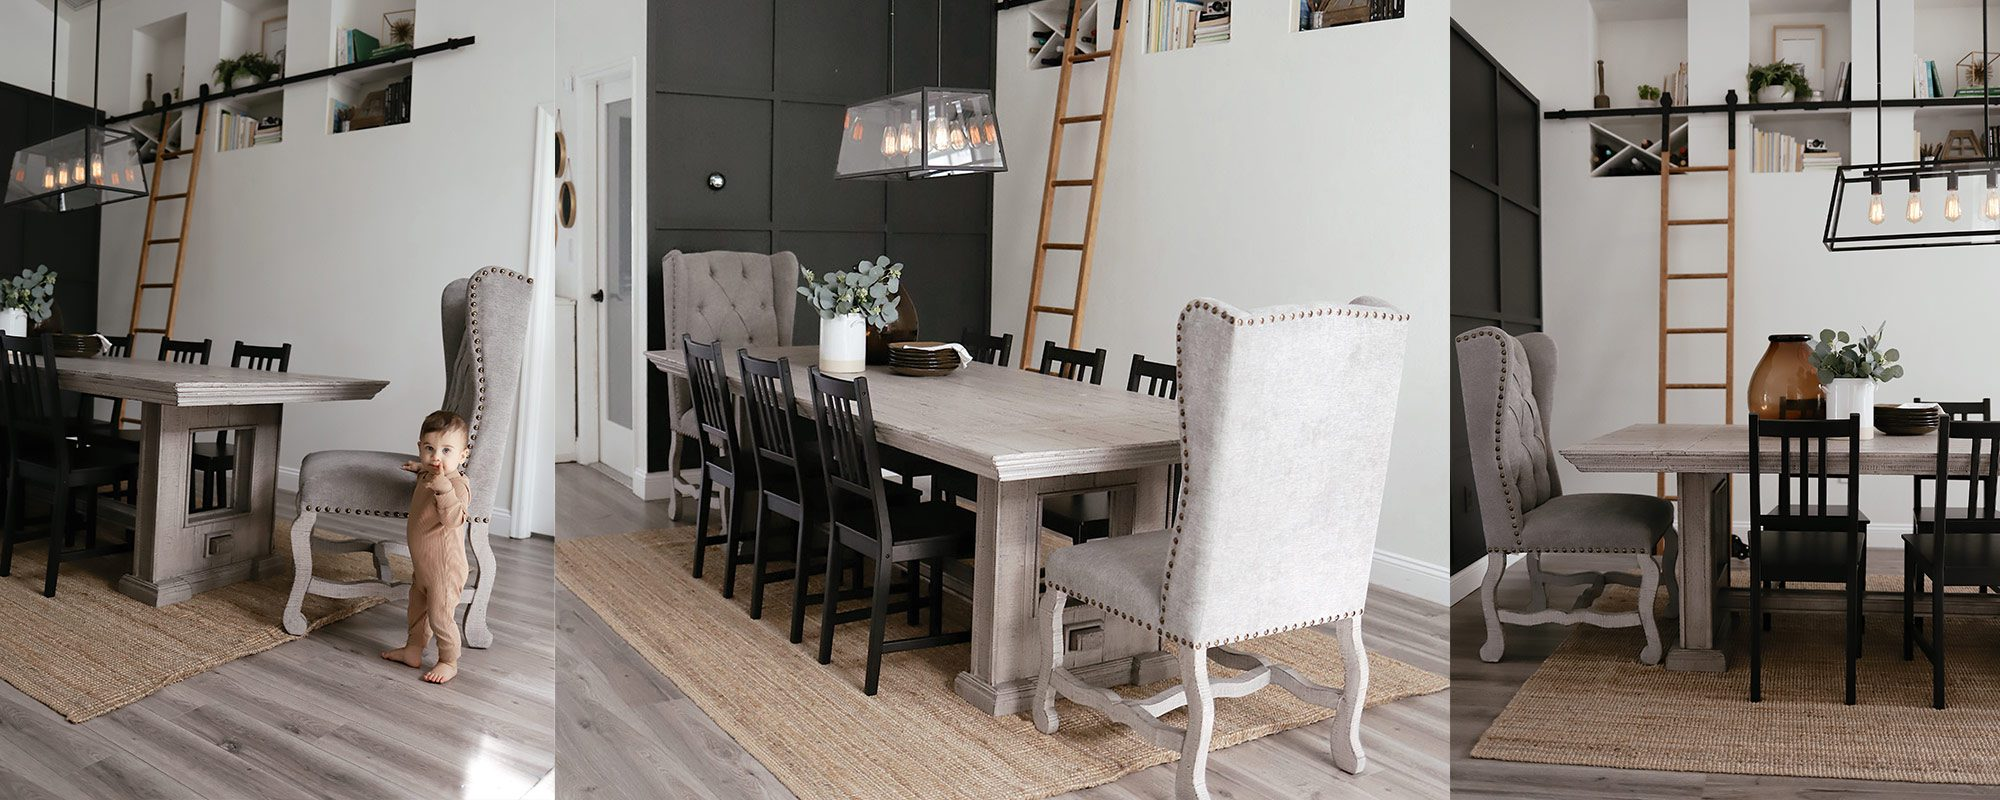 Dining Room Upgrade: How to Shop for a Large Family Dining Table